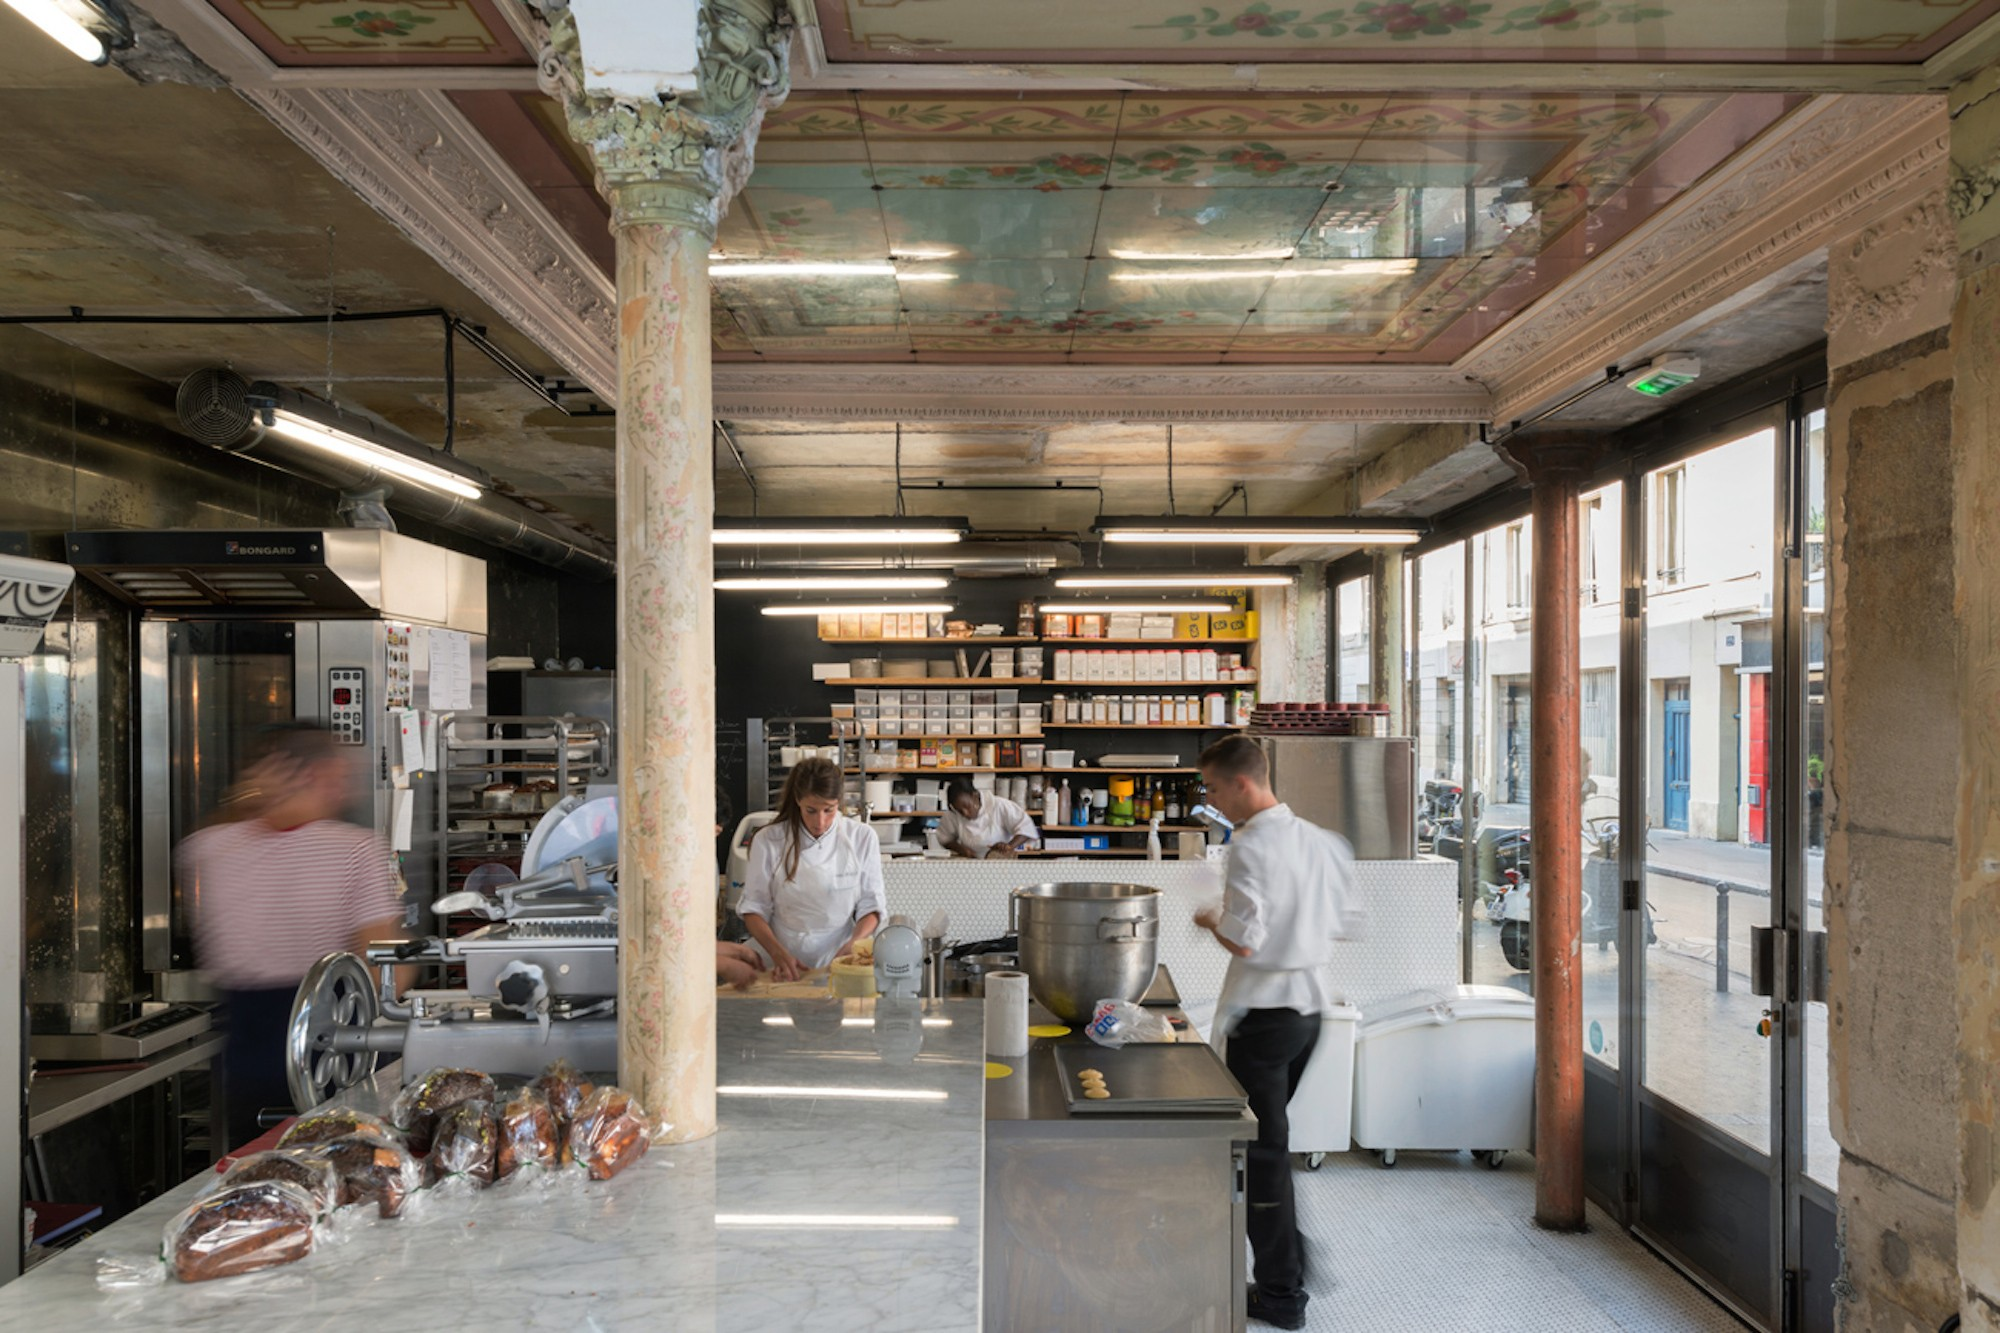 We love to go to Liberté bakery for brunch in Paris, as their bread is amazing and we also love the historic industrial decor.